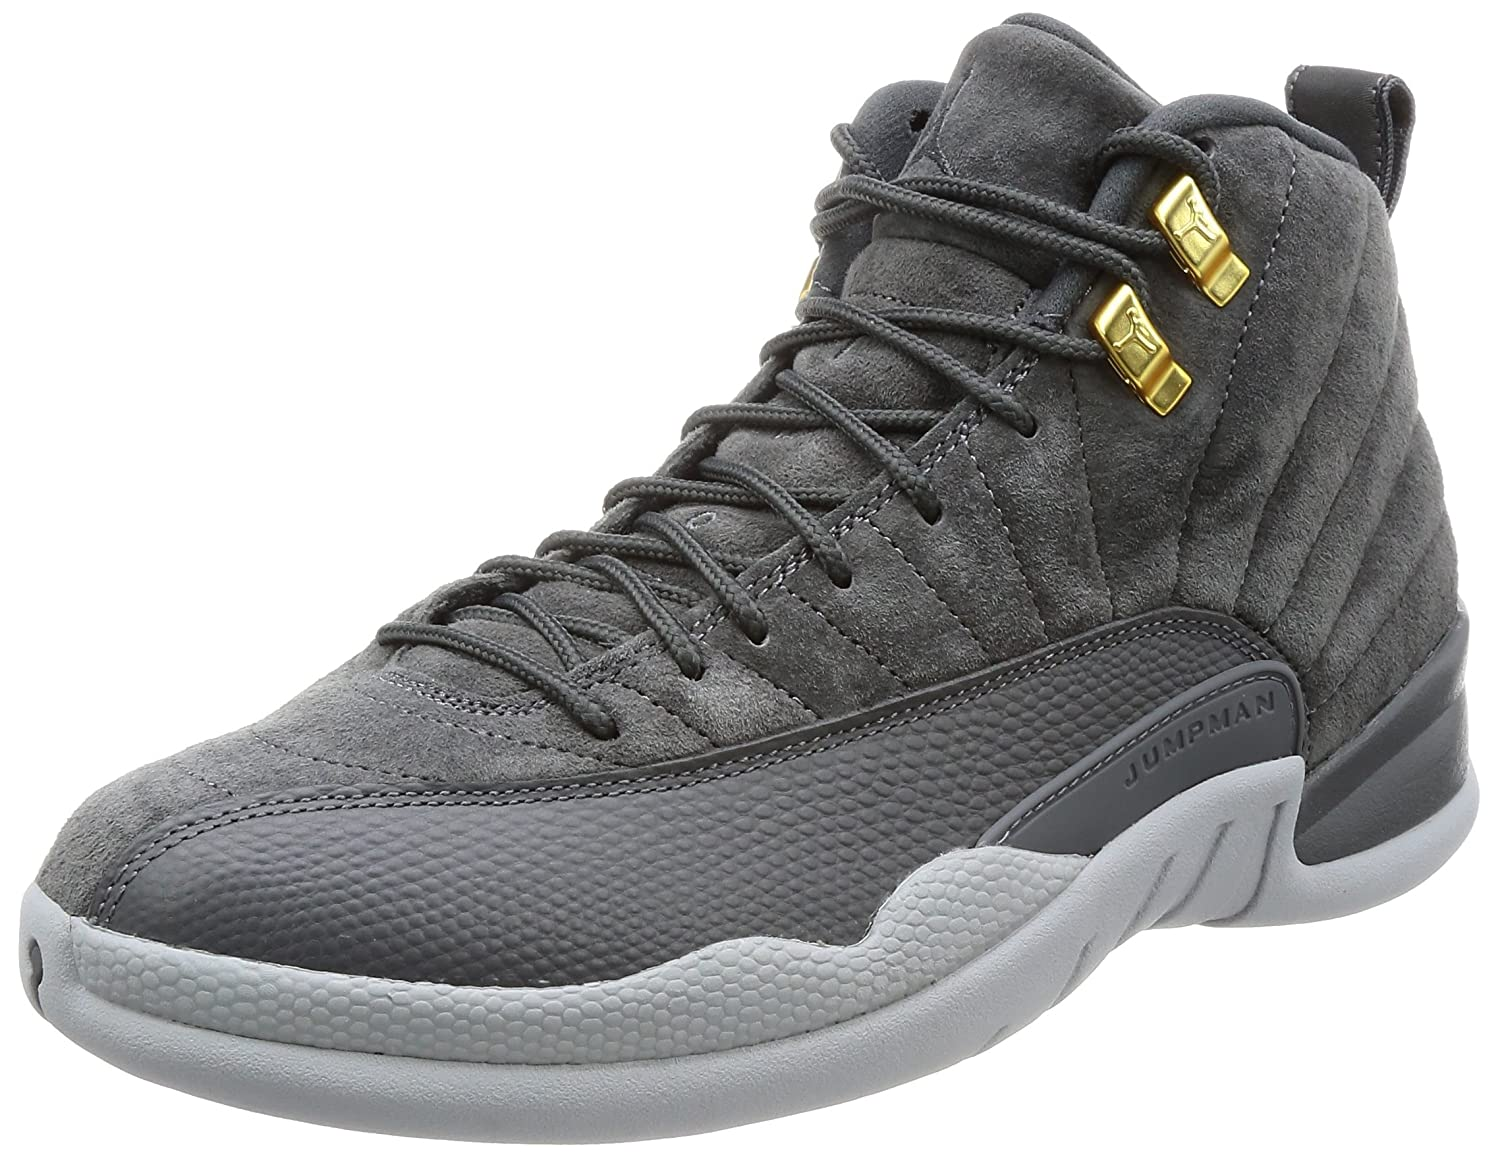 Nike Air Jordan 12 Retro Dark Grey - 130690-005 -  13